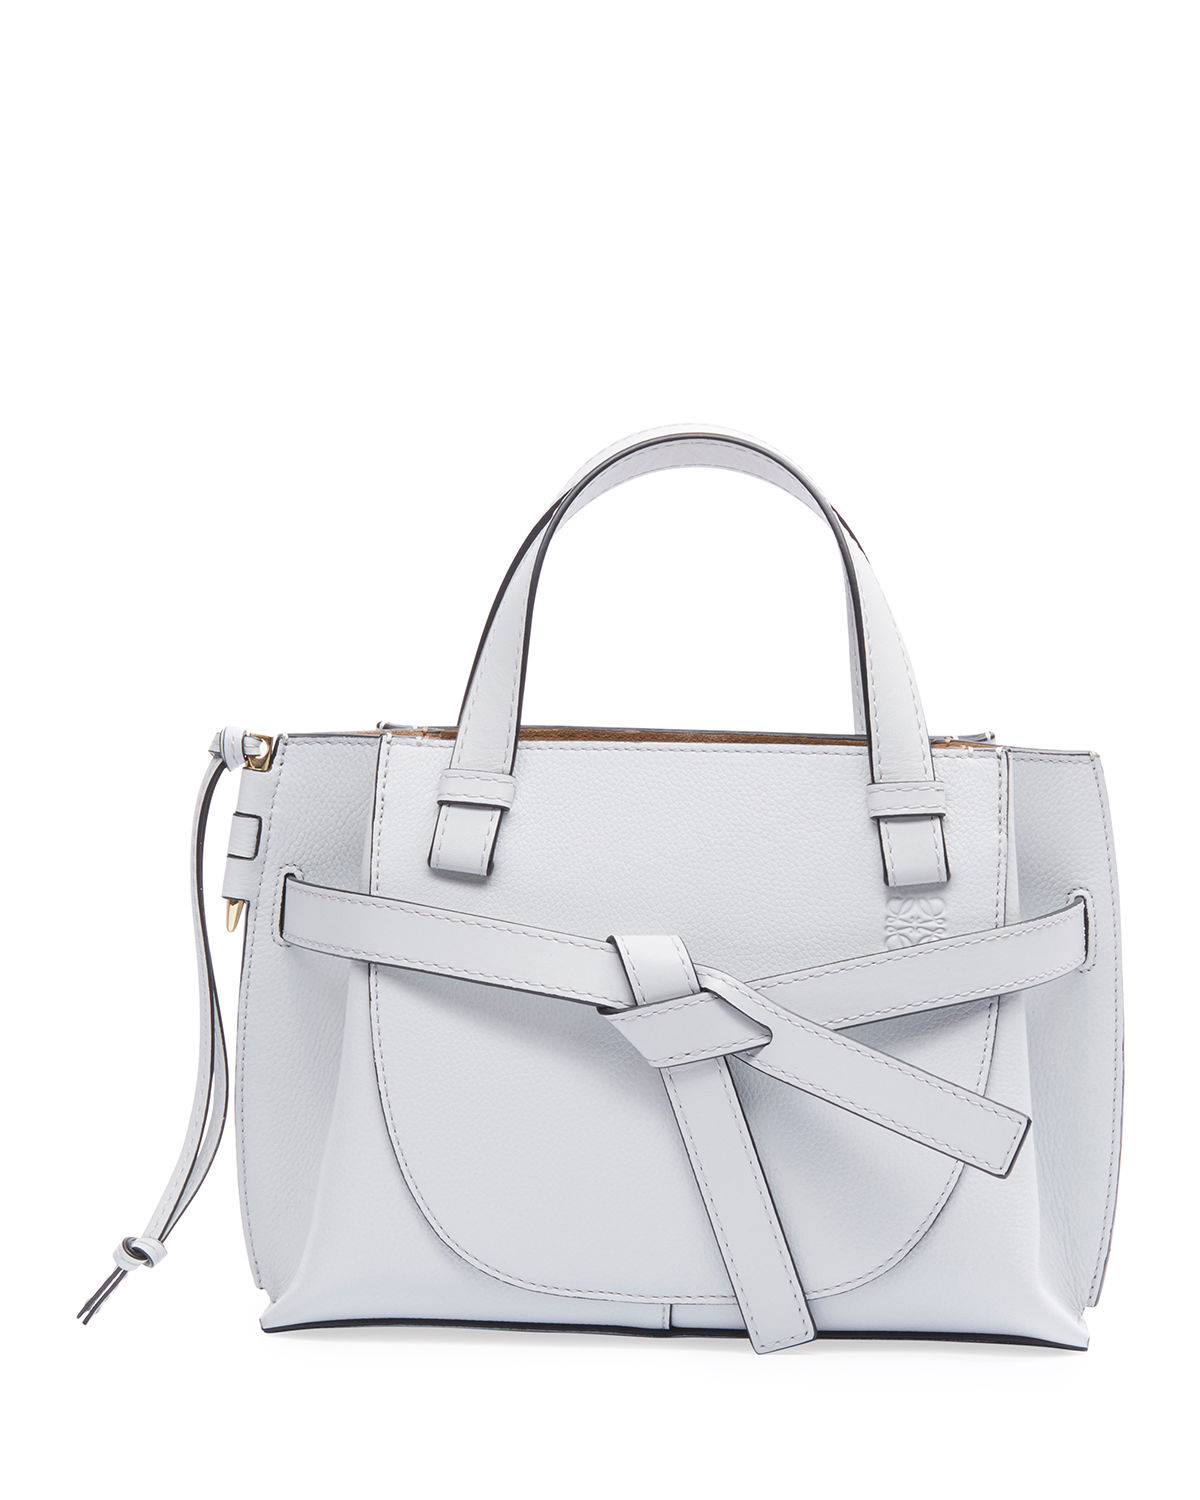 Loewe Gate Small Leather Top-Handle Tote Bag In White